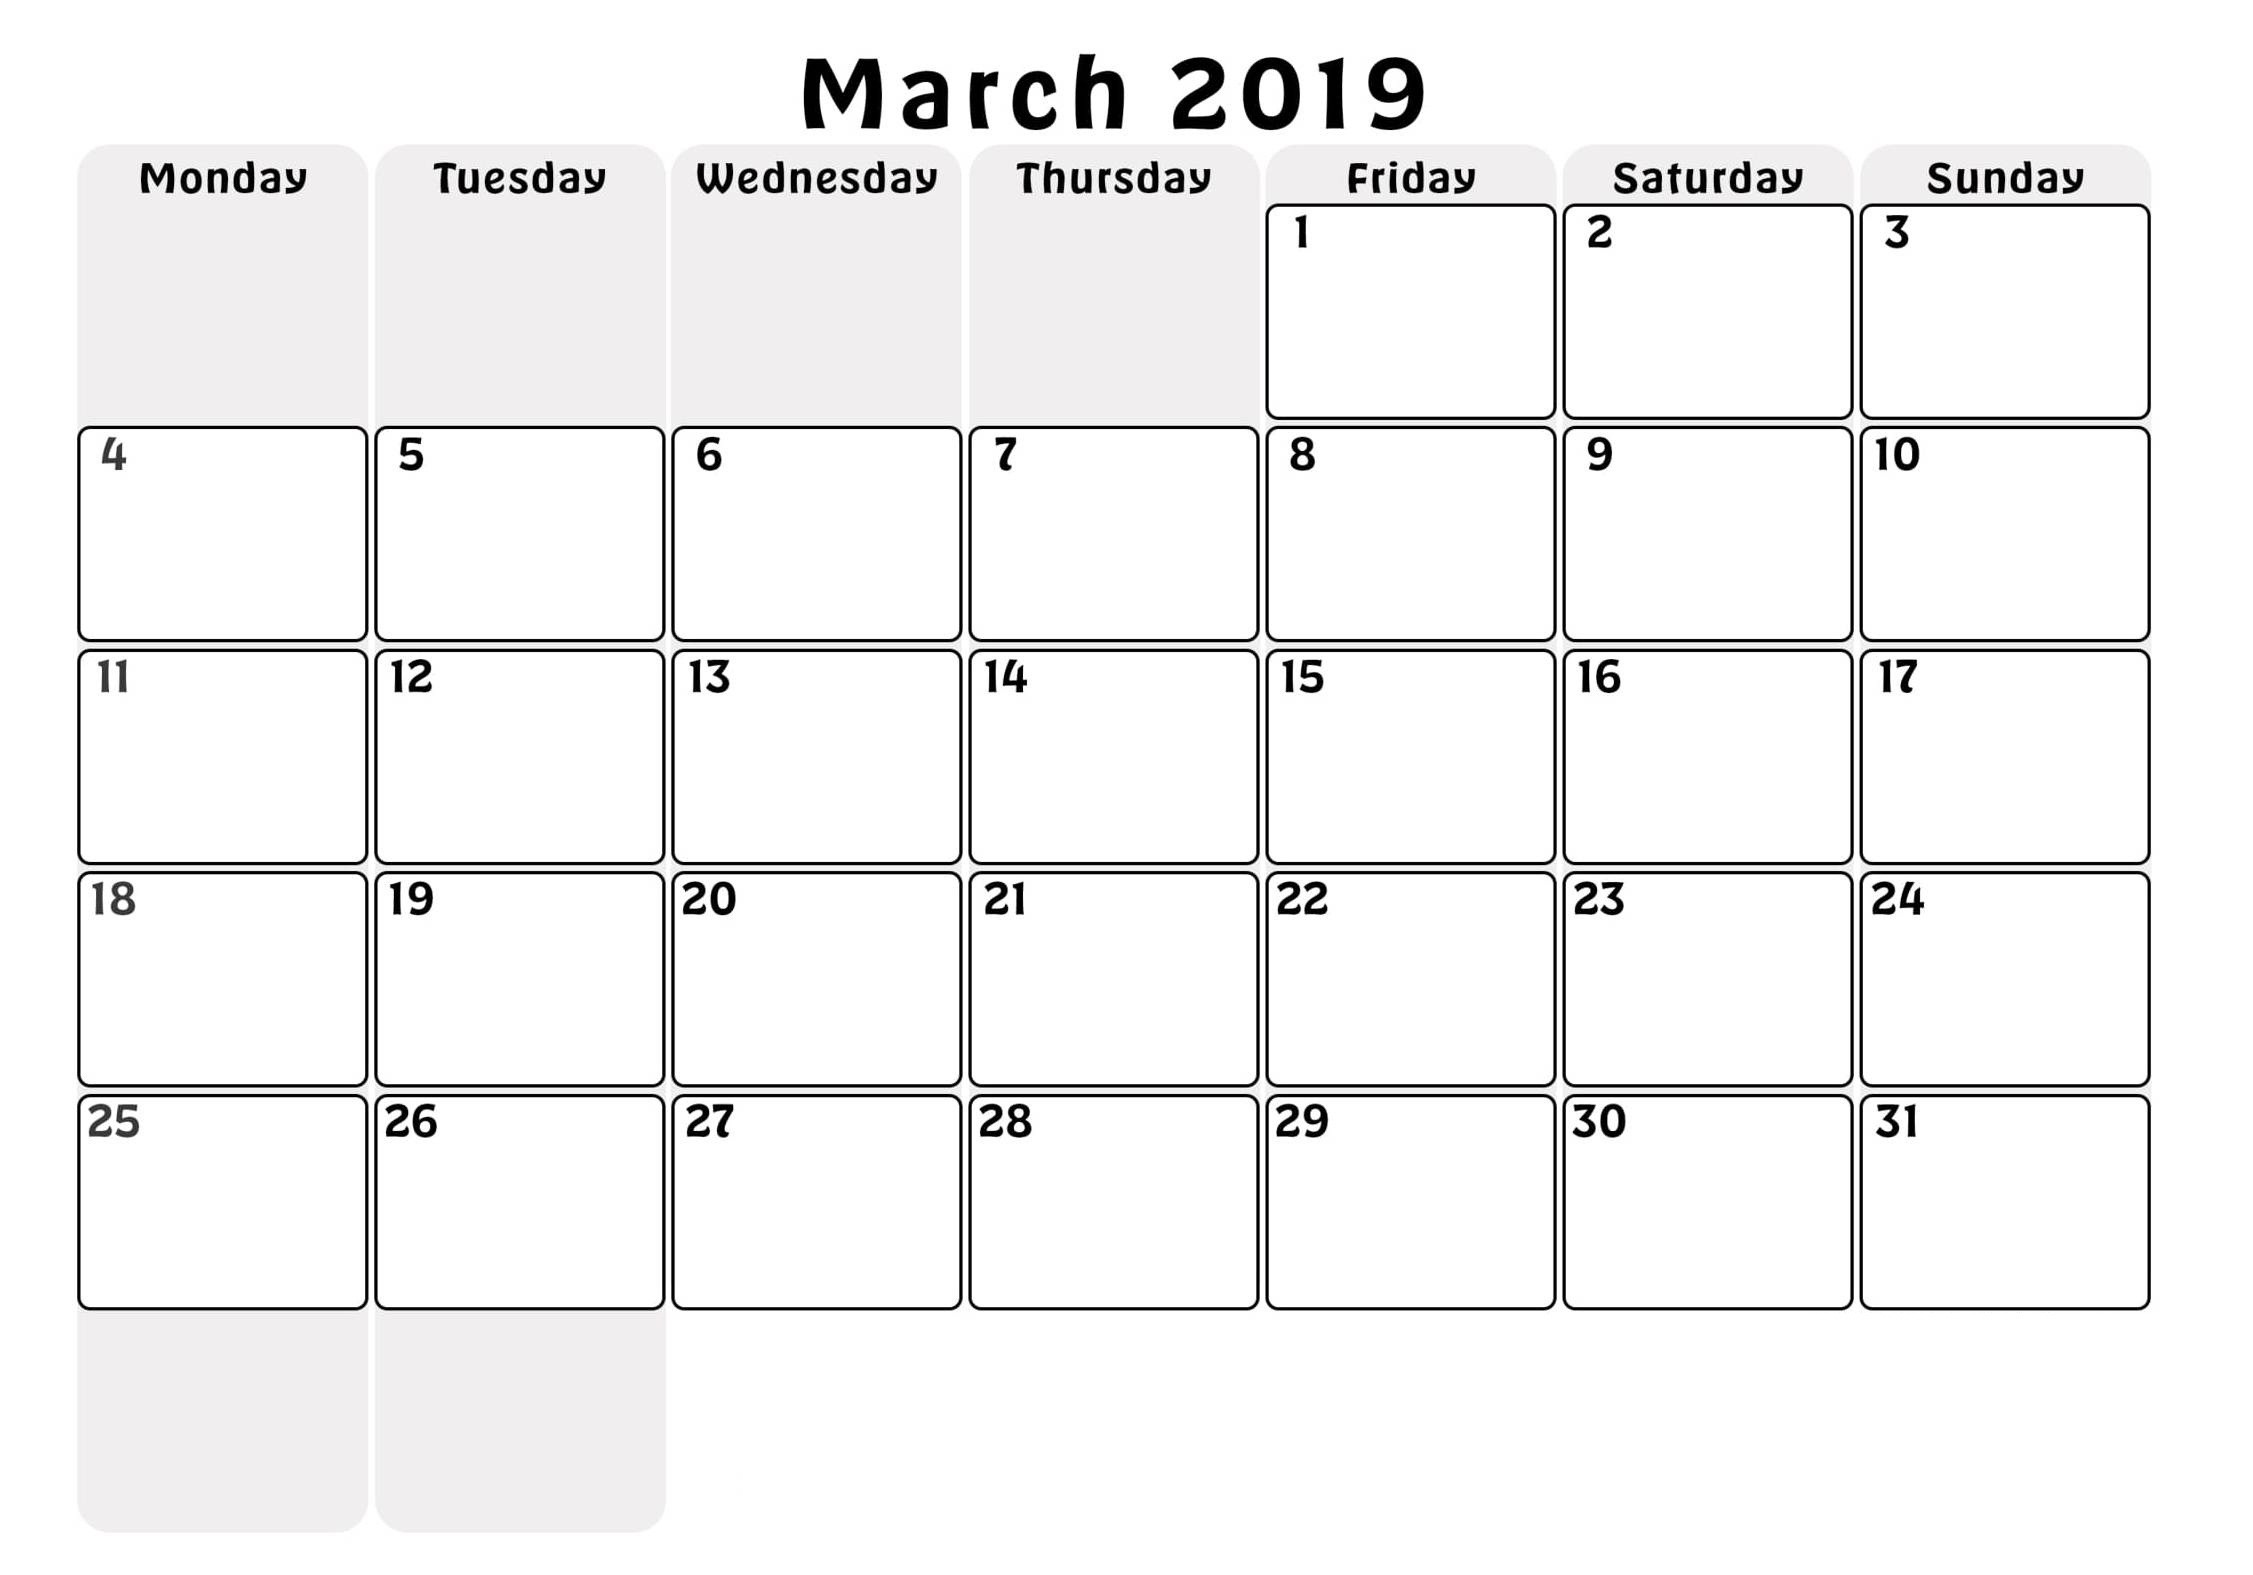 March Calendar 2019 Más Reciente 2019 March Calendar Png 2018 Printable Calendar Store Of March Calendar 2019 Más Populares February March Calendar 2019 2018 Printable Calendar Store